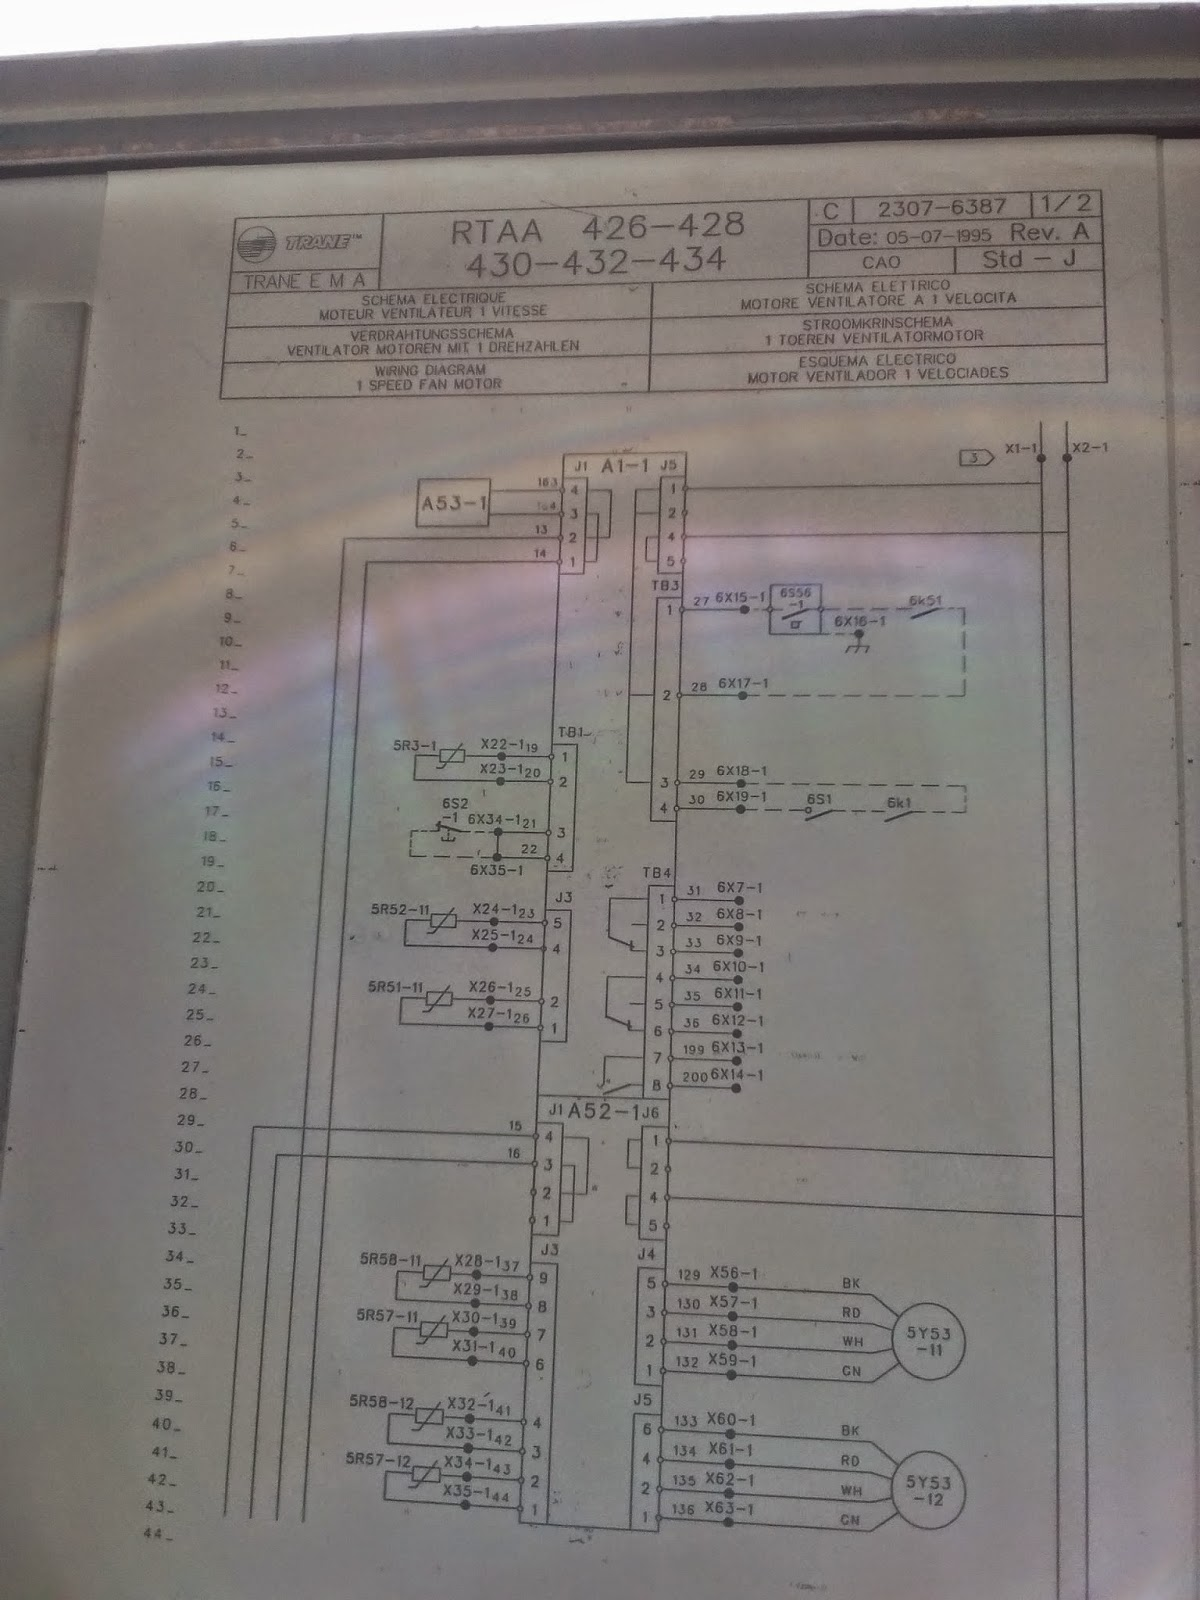 Trane chiller air cooled control wiring diagram RTAA Series